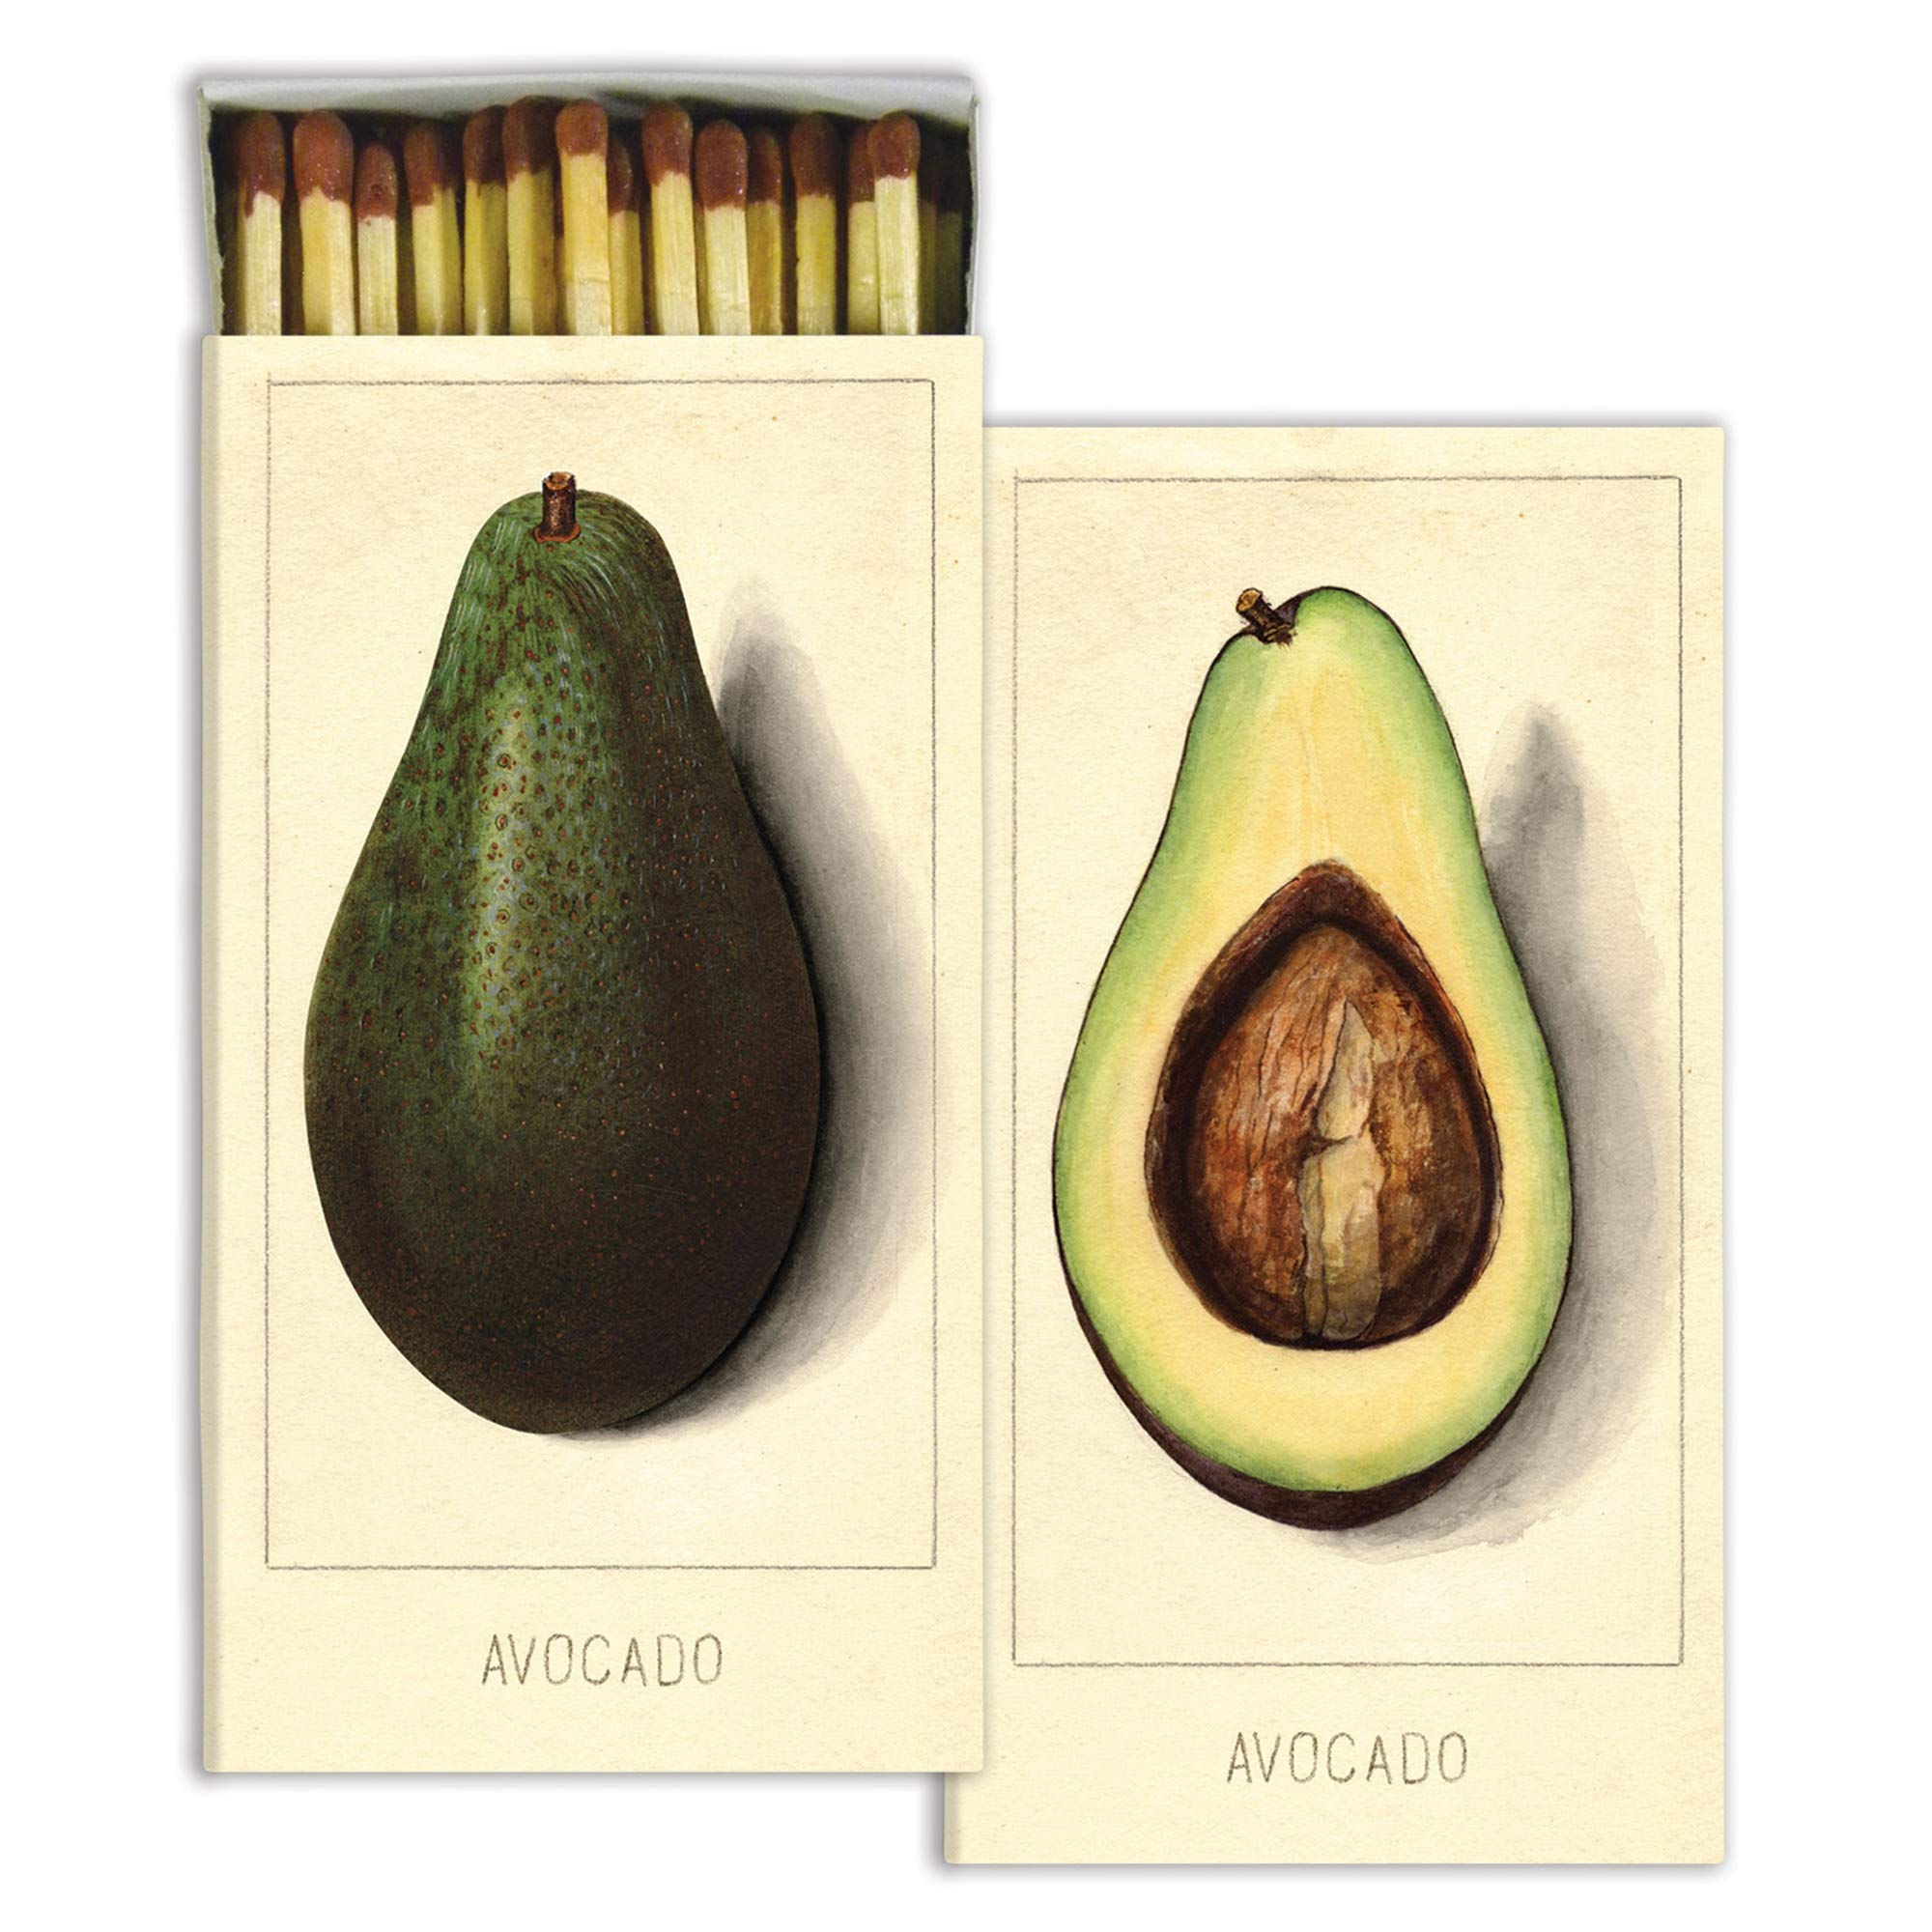 Decorative Avocado Match Boxes with Wooden Matches | Set of 10 Large Match Boxes